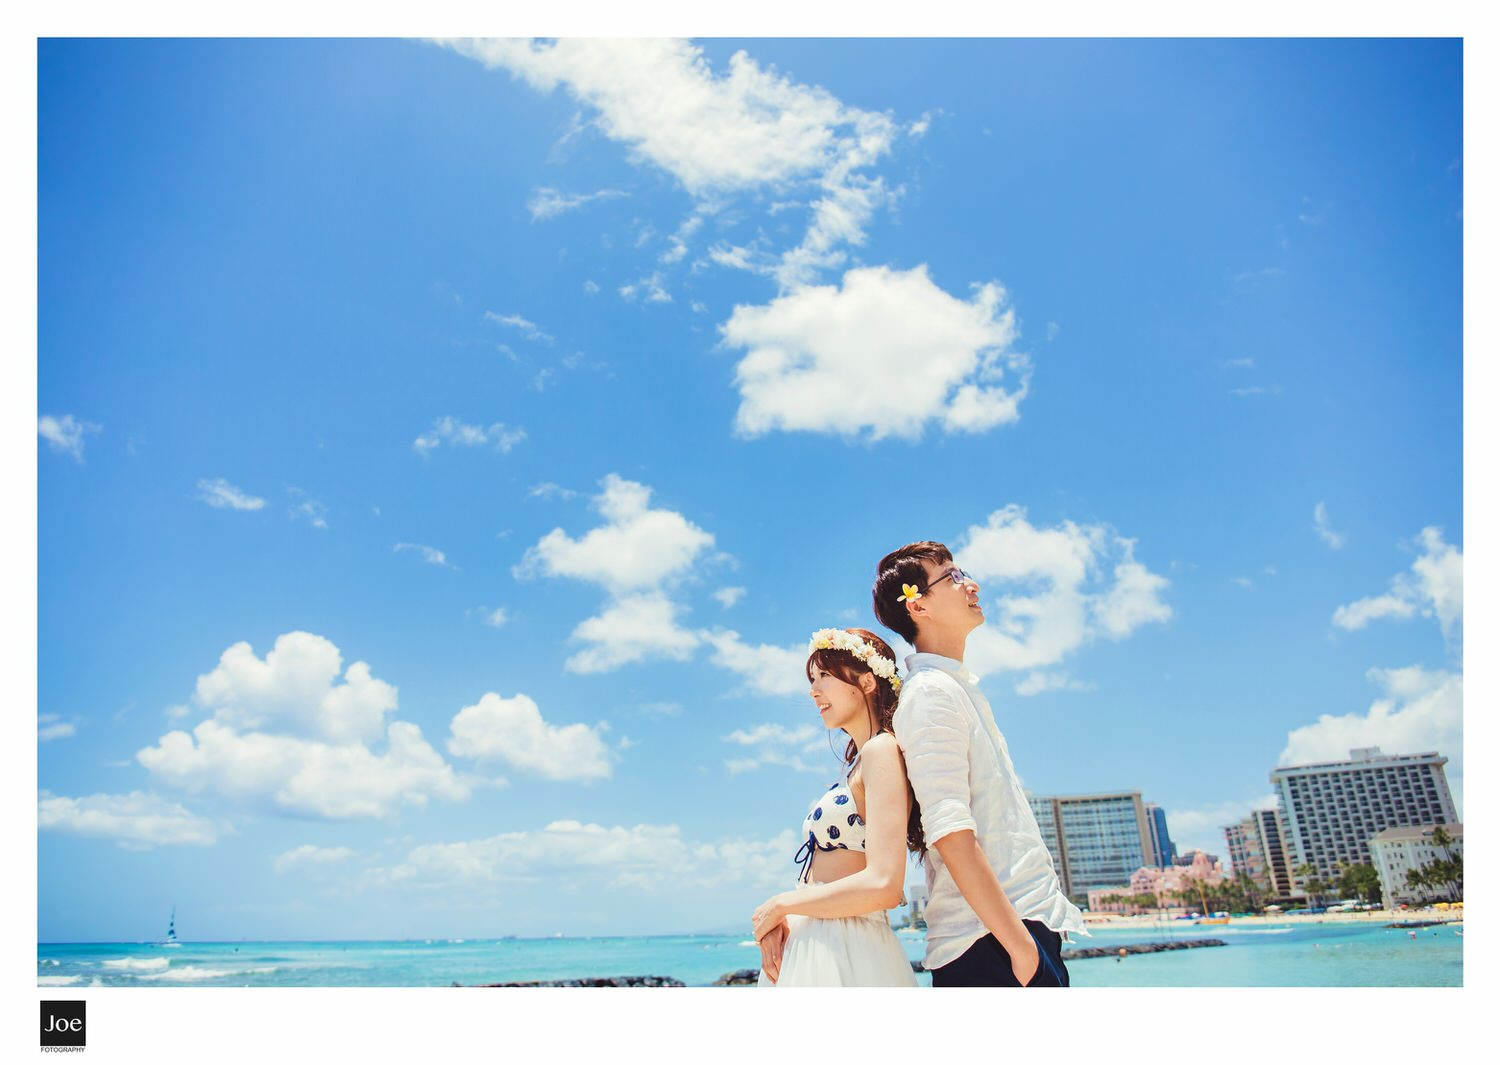 079-waikiki-beach-hawaii-pre-wedding-tiffany-tony-joe-fotography.jpg